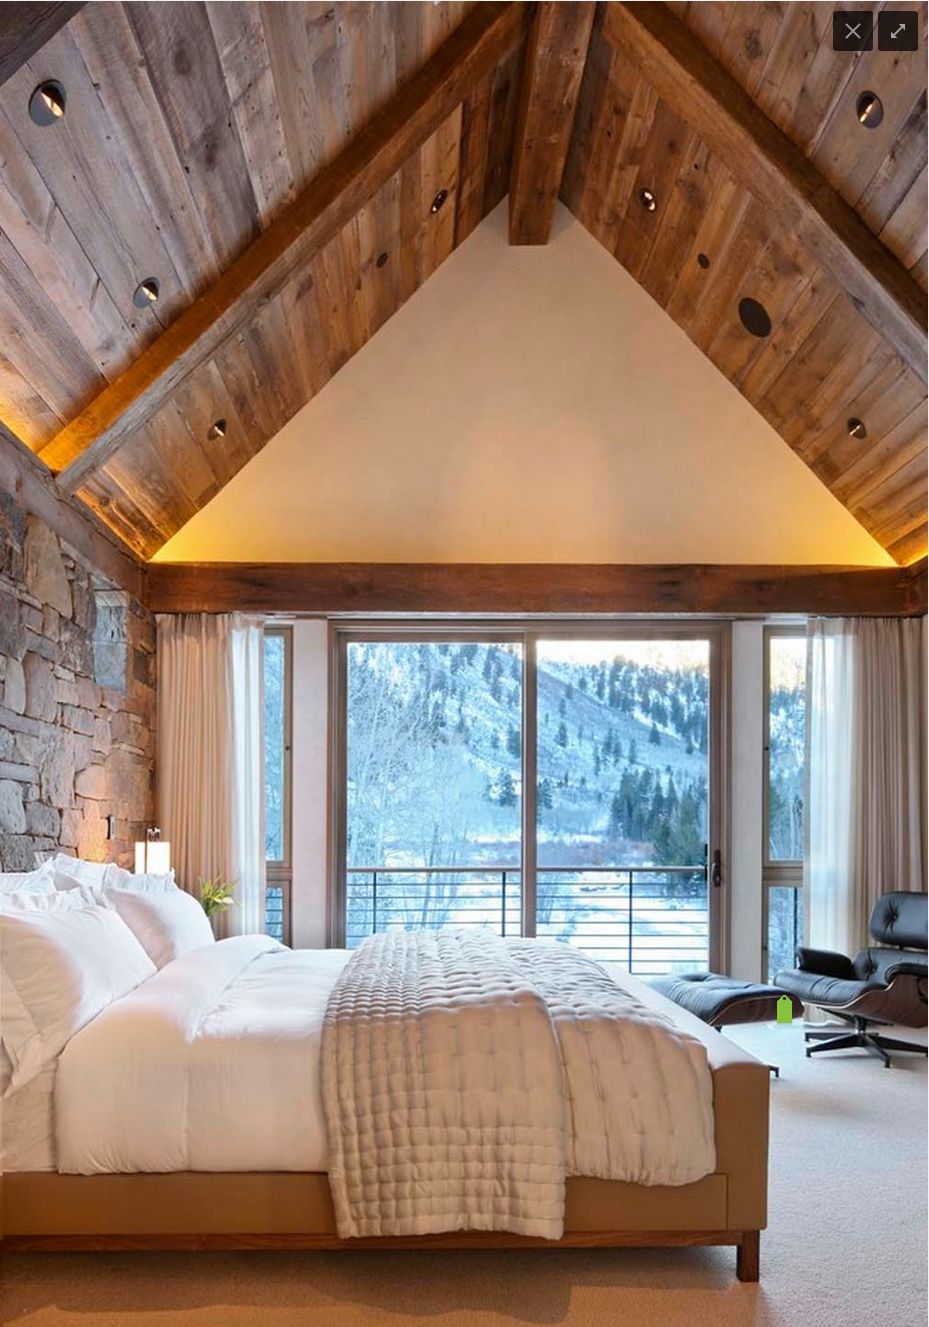 Vaulted ceiling for the bedroom   Home Ideas   Pinterest   Ceiling